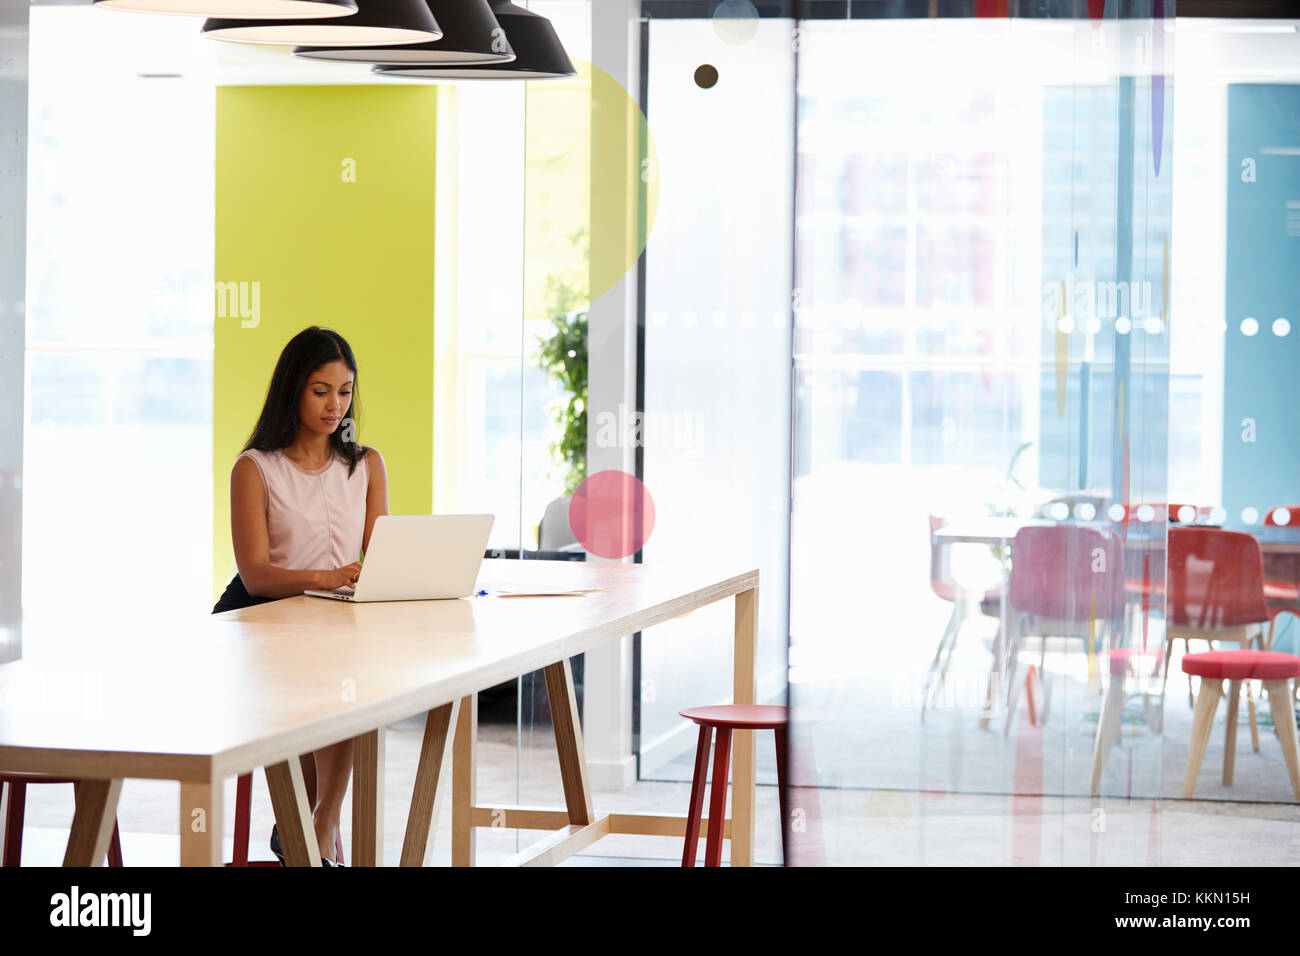 Young black woman working alone in an office meeting area - Stock Image